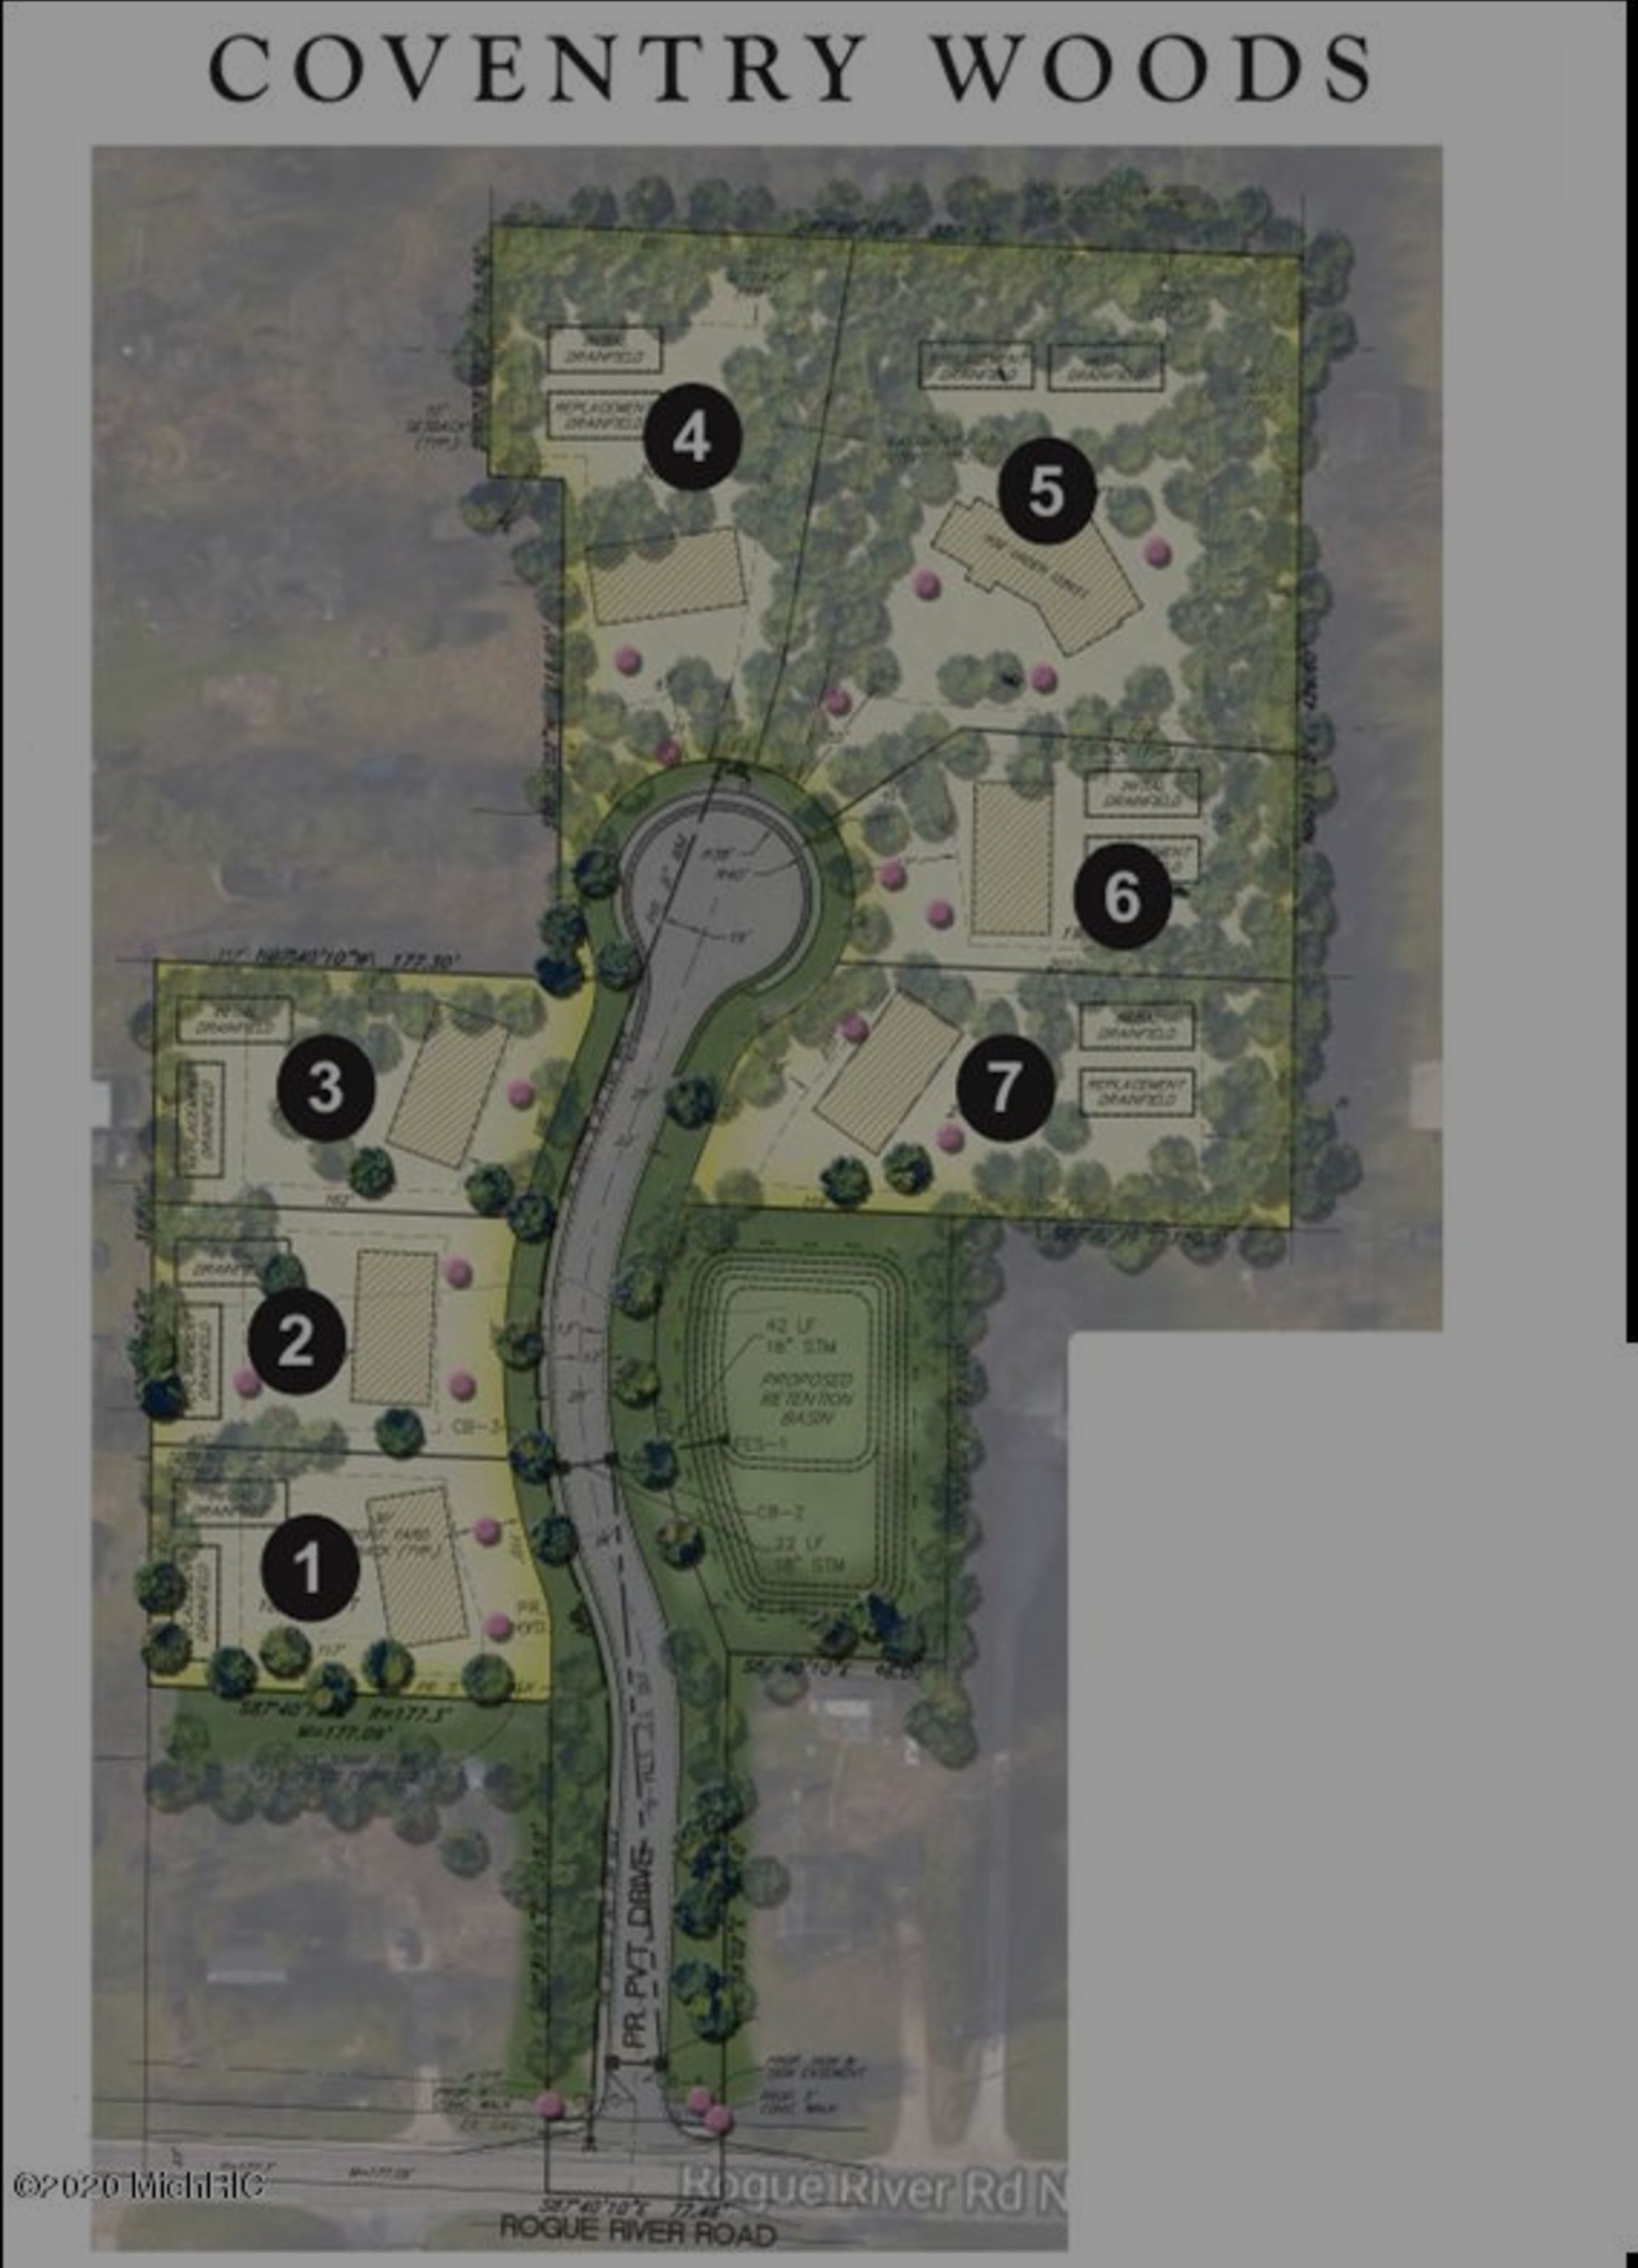 6069 Coventry Woods Lot #2, Belmont, MI 49306